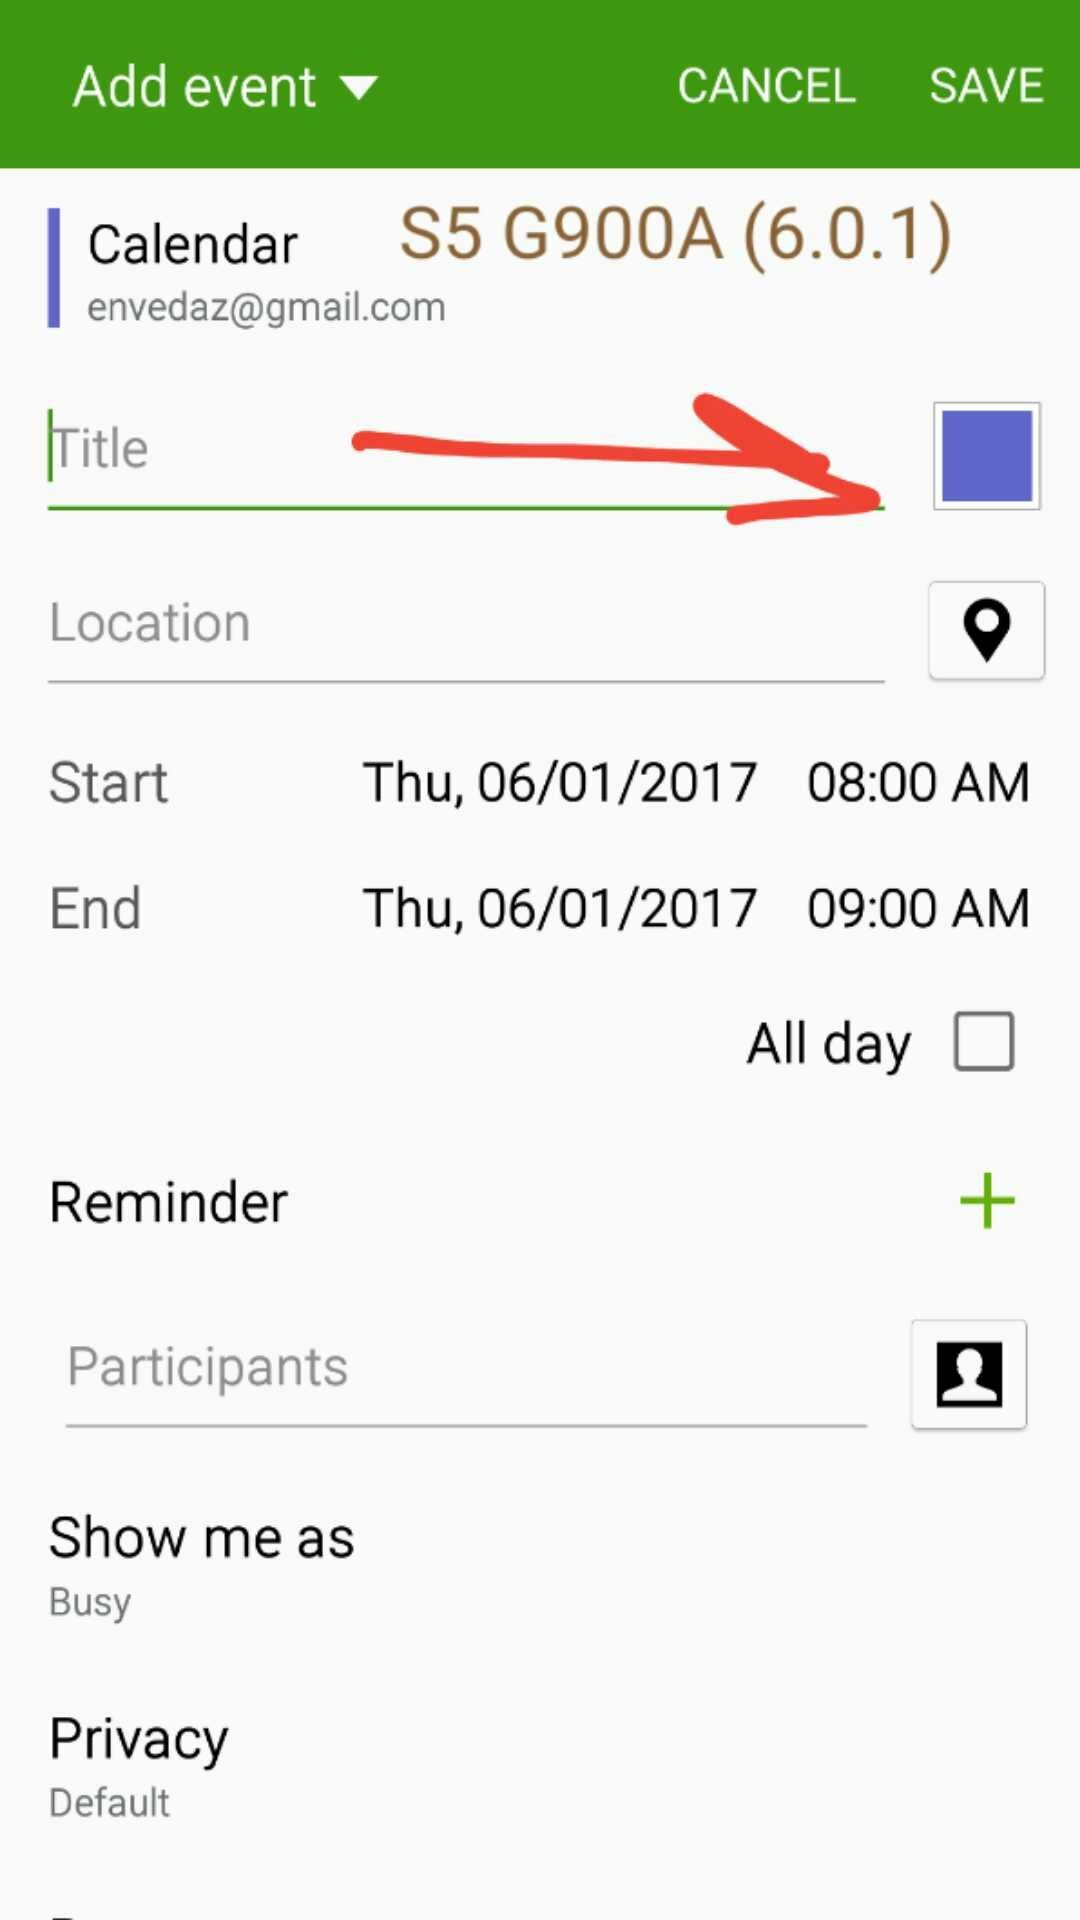 Event Calendar Js : Cant we change the color of calendar entries any more? android